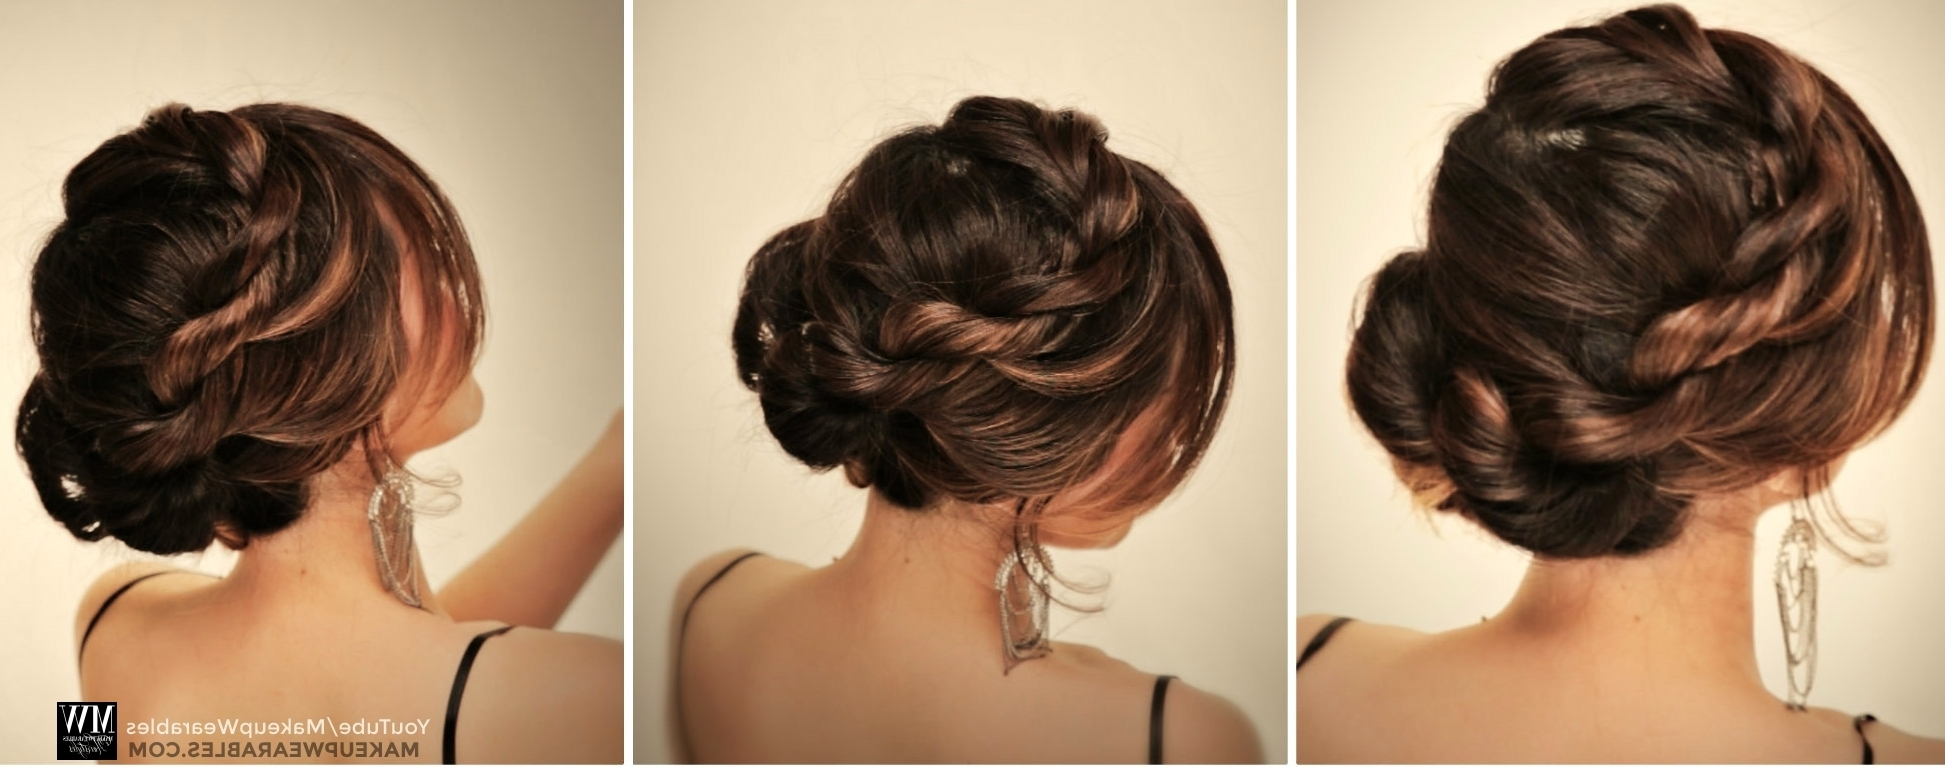 How To: 5 Amazingly Cute + Easy Hairstyles With A Simple Twist Within Long Hair Easy Updo Hairstyles (View 14 of 15)